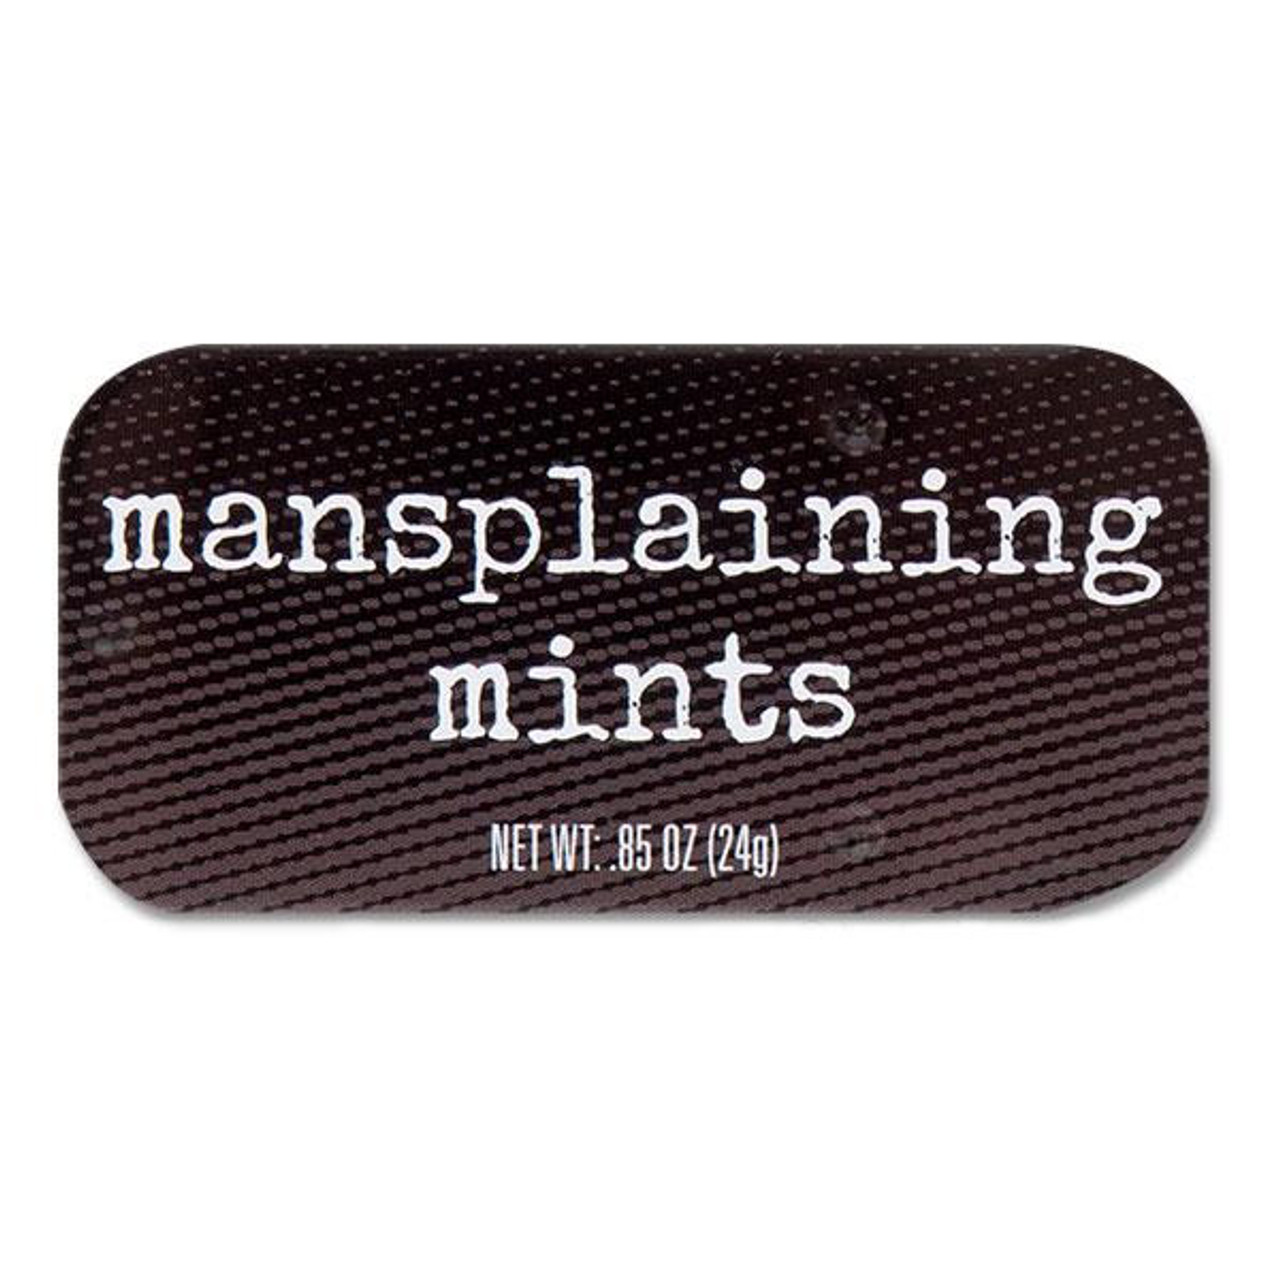 Mansplaining Mints